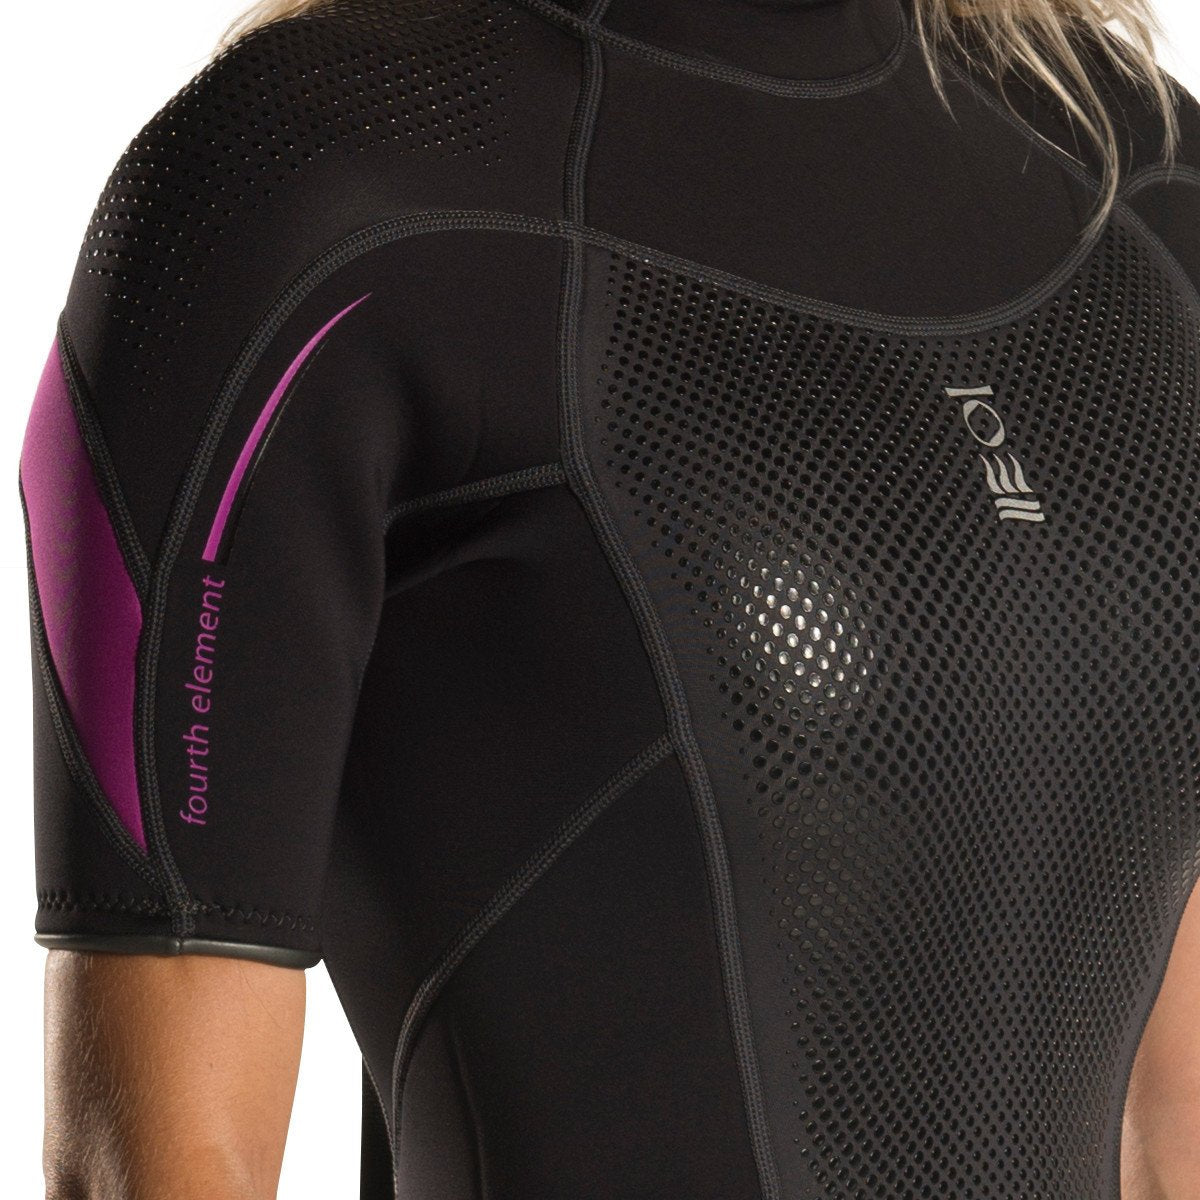 64c6ab1c7e Fourth Element Womens Xenos 3mm Shortie Wetsuit